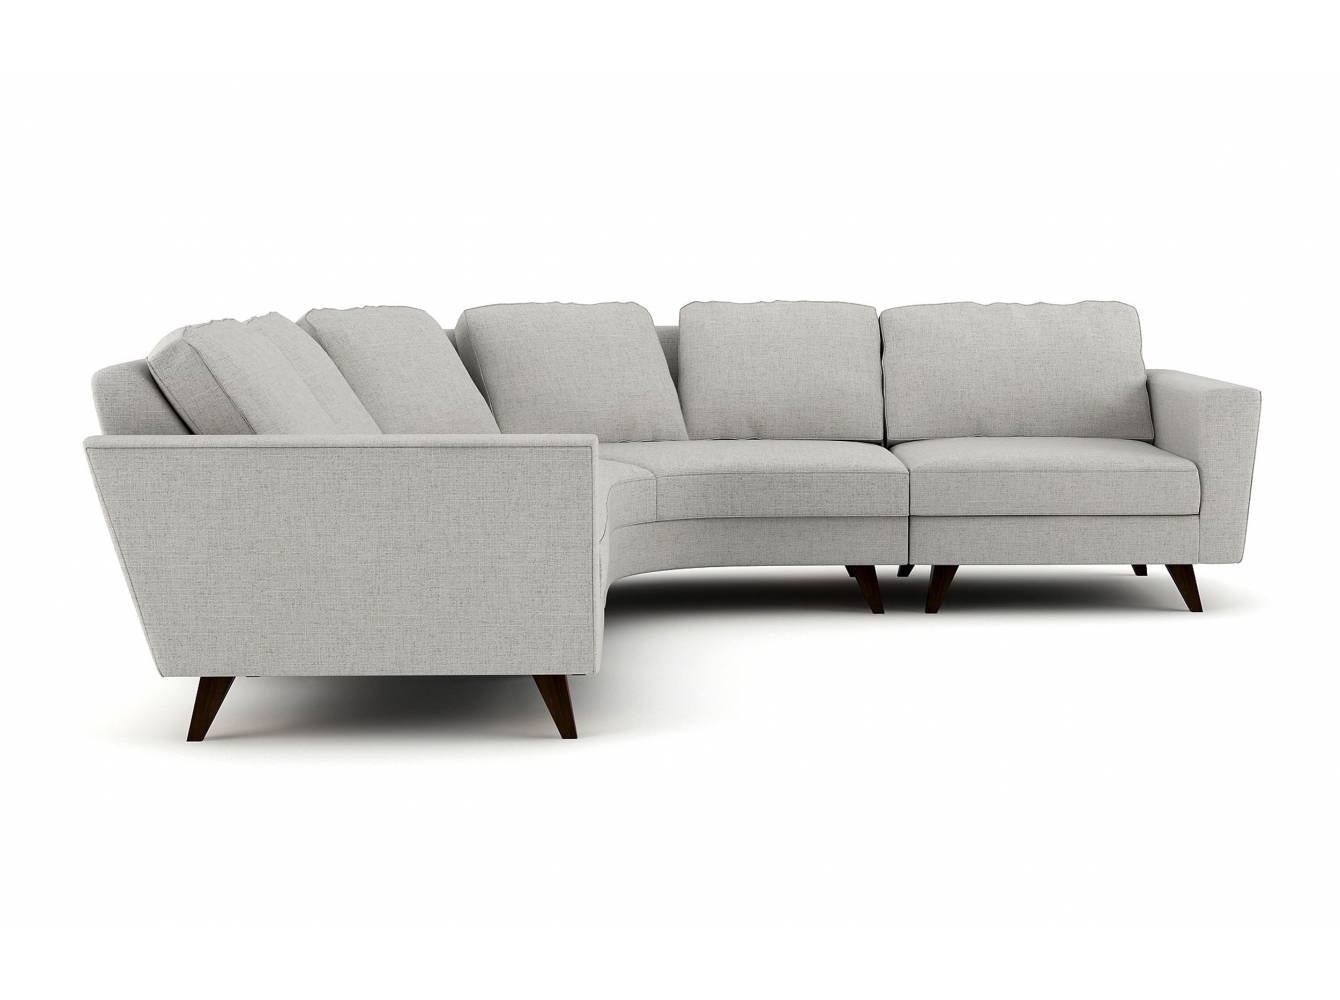 Pel Rounded Corner Sectional – Stem With Rounded Corner Sectional Sofas (View 2 of 10)